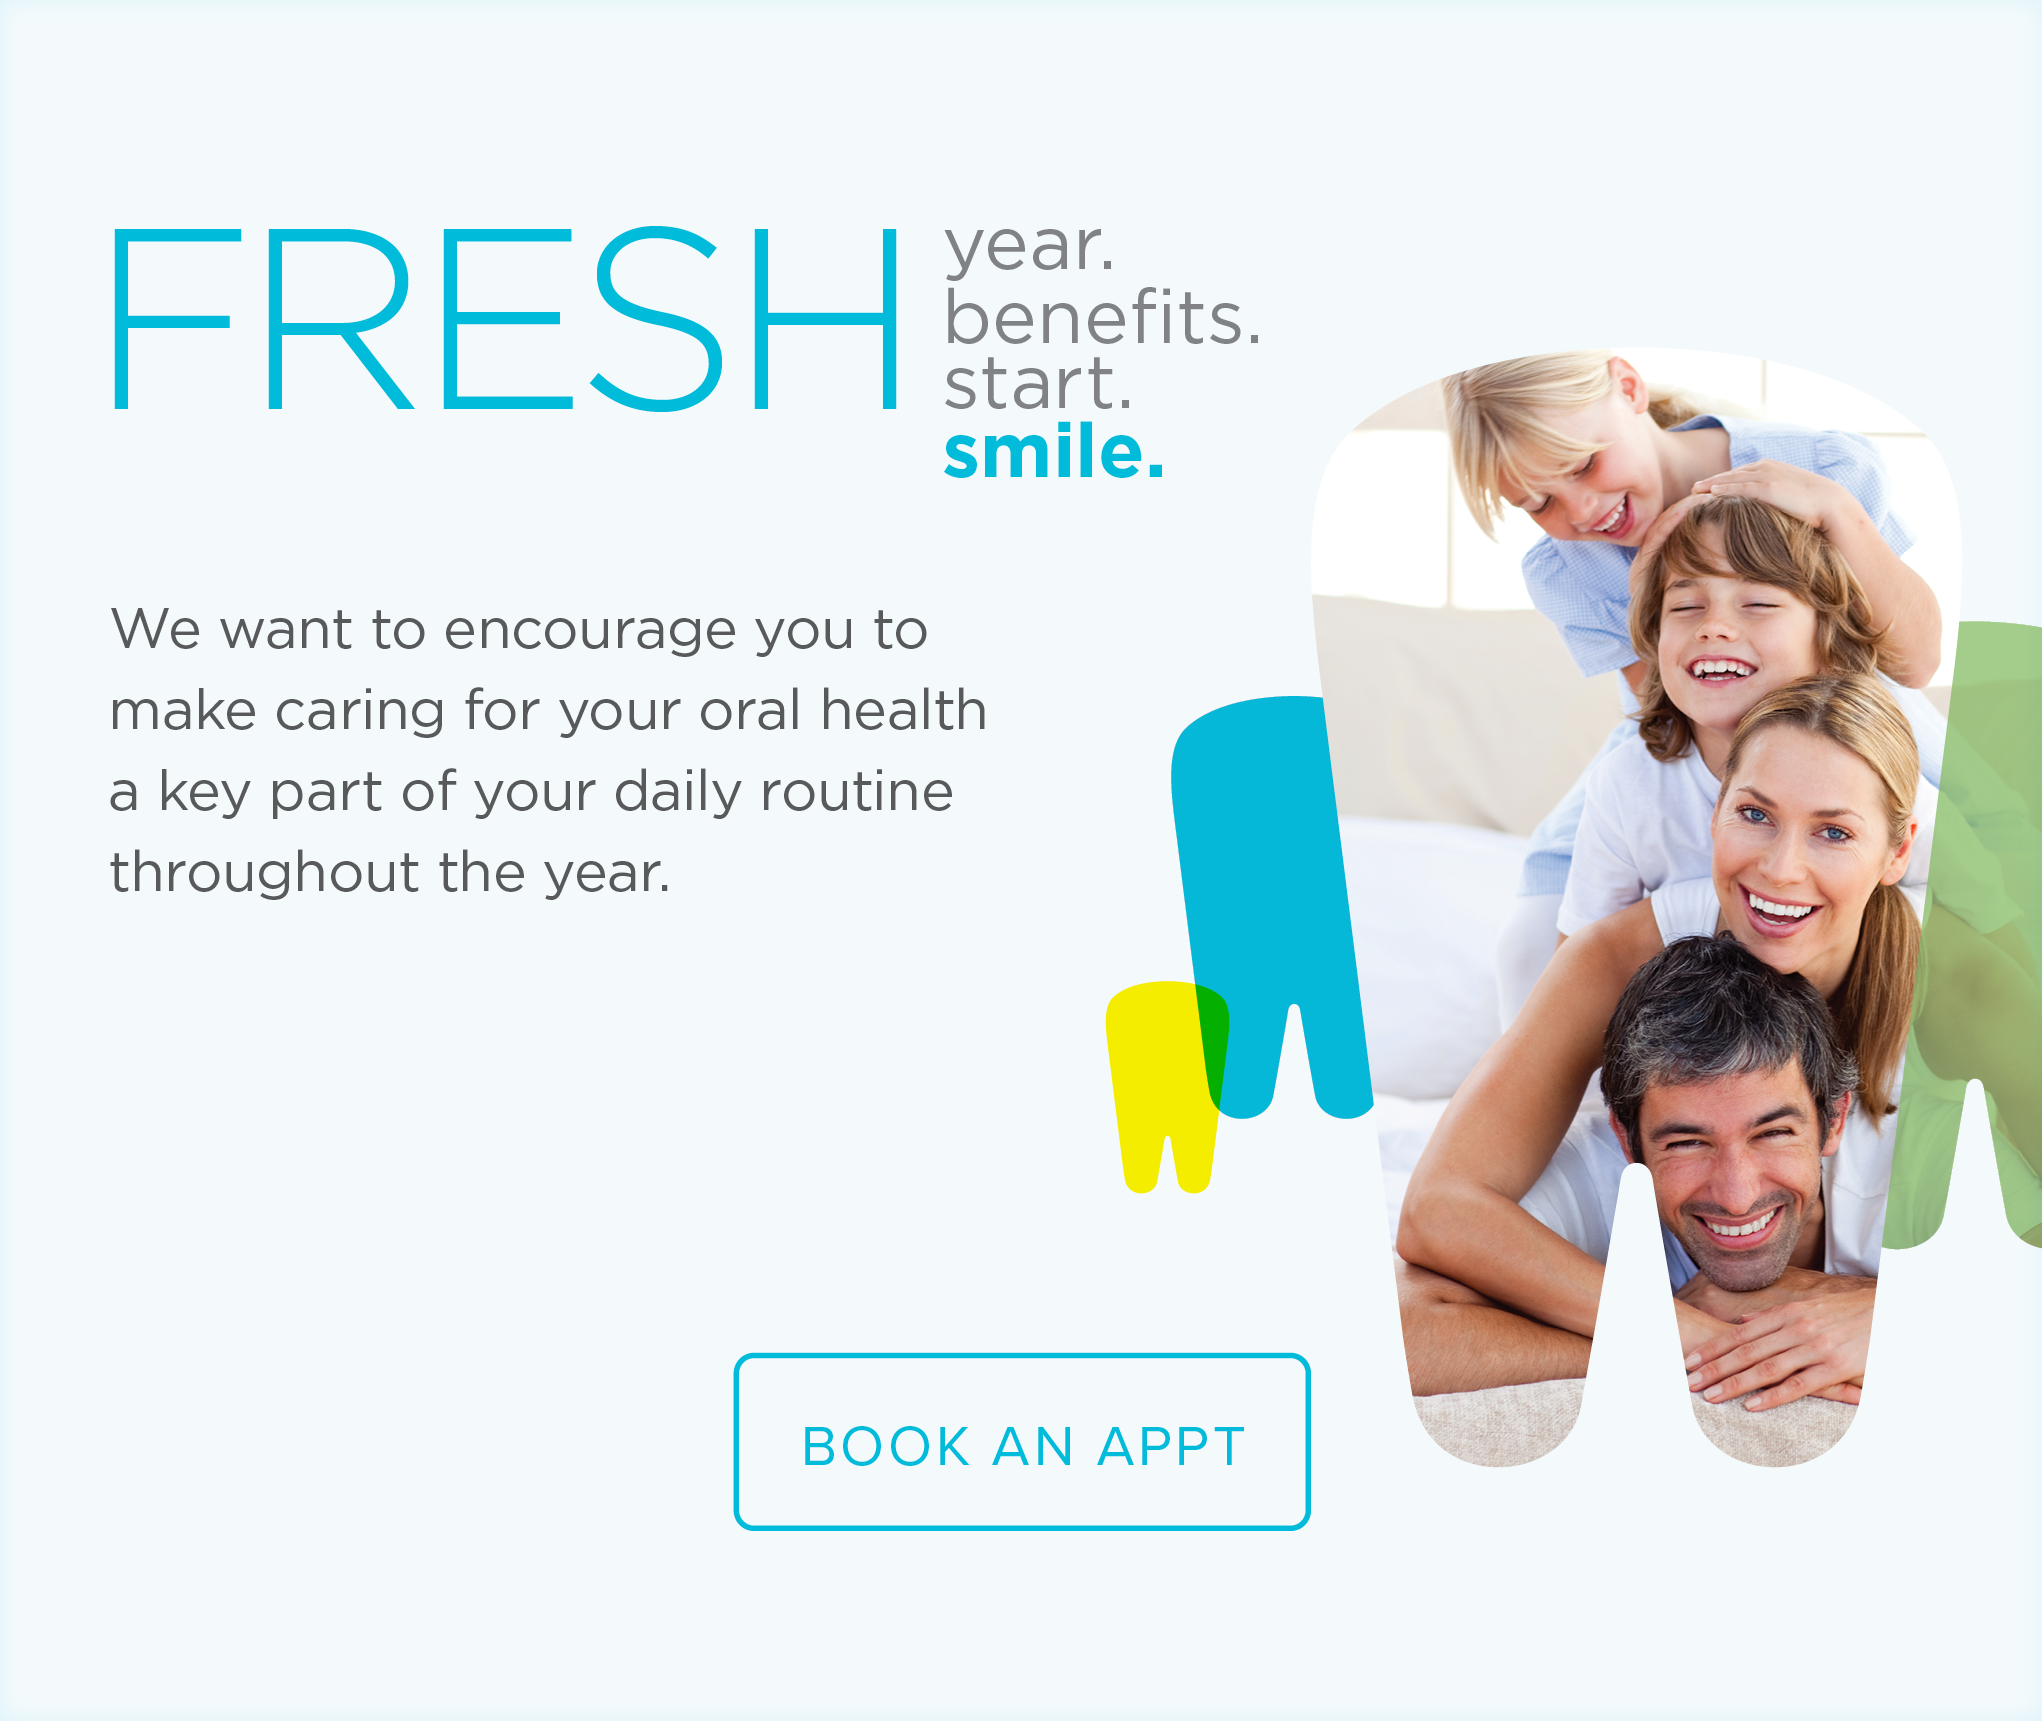 Northwest Reno Smiles Dental Group - Make the Most of Your Benefits